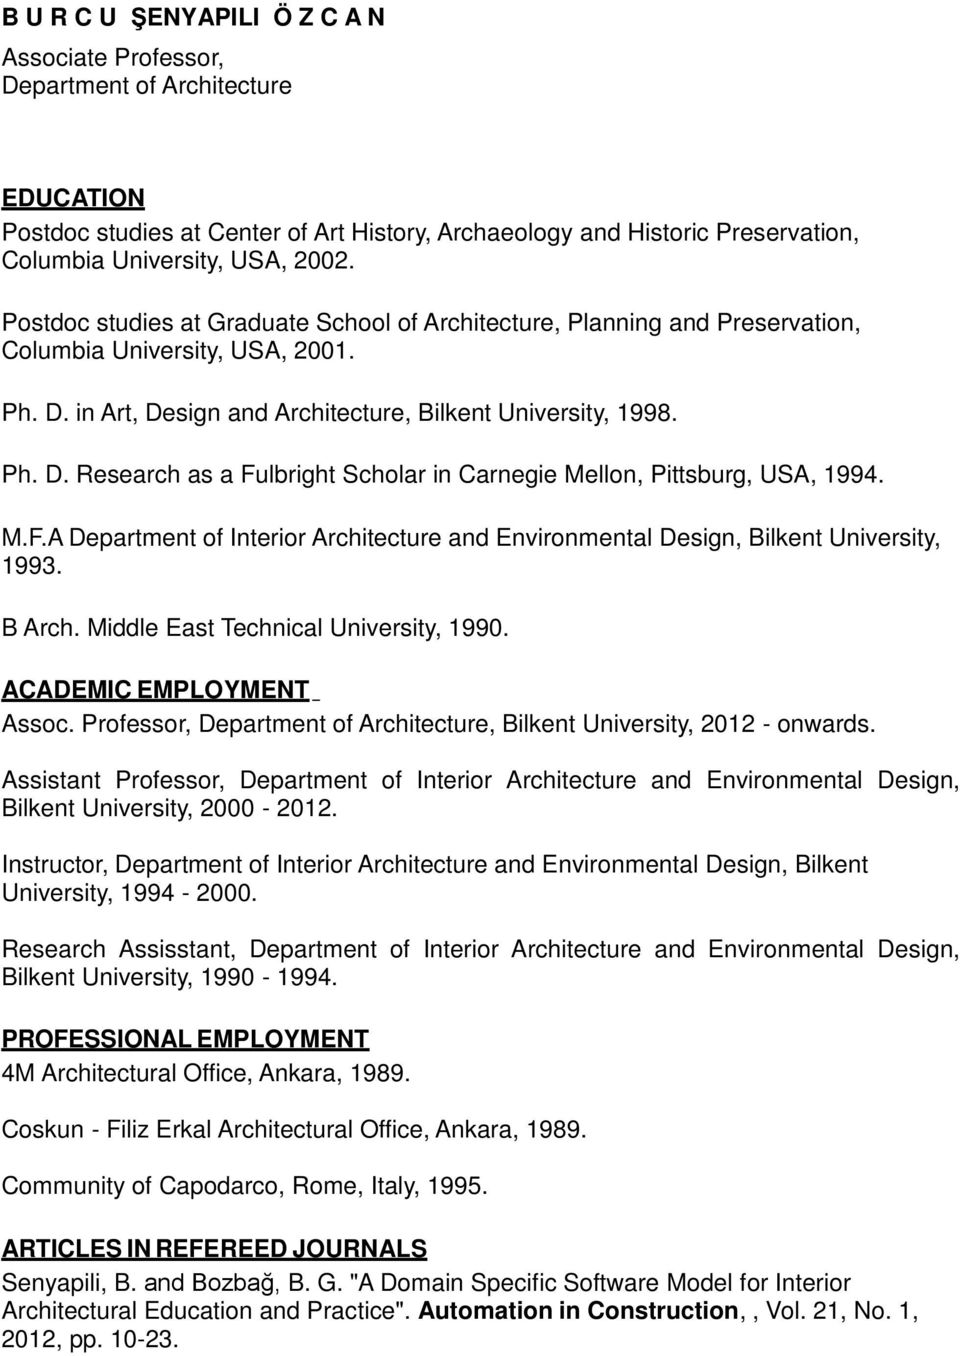 M.F.A Department of Interior Architecture and Environmental Design, Bilkent University, 1993. B Arch. Middle East Technical University, 1990. ACADEMIC EMPLOYMENT Assoc.